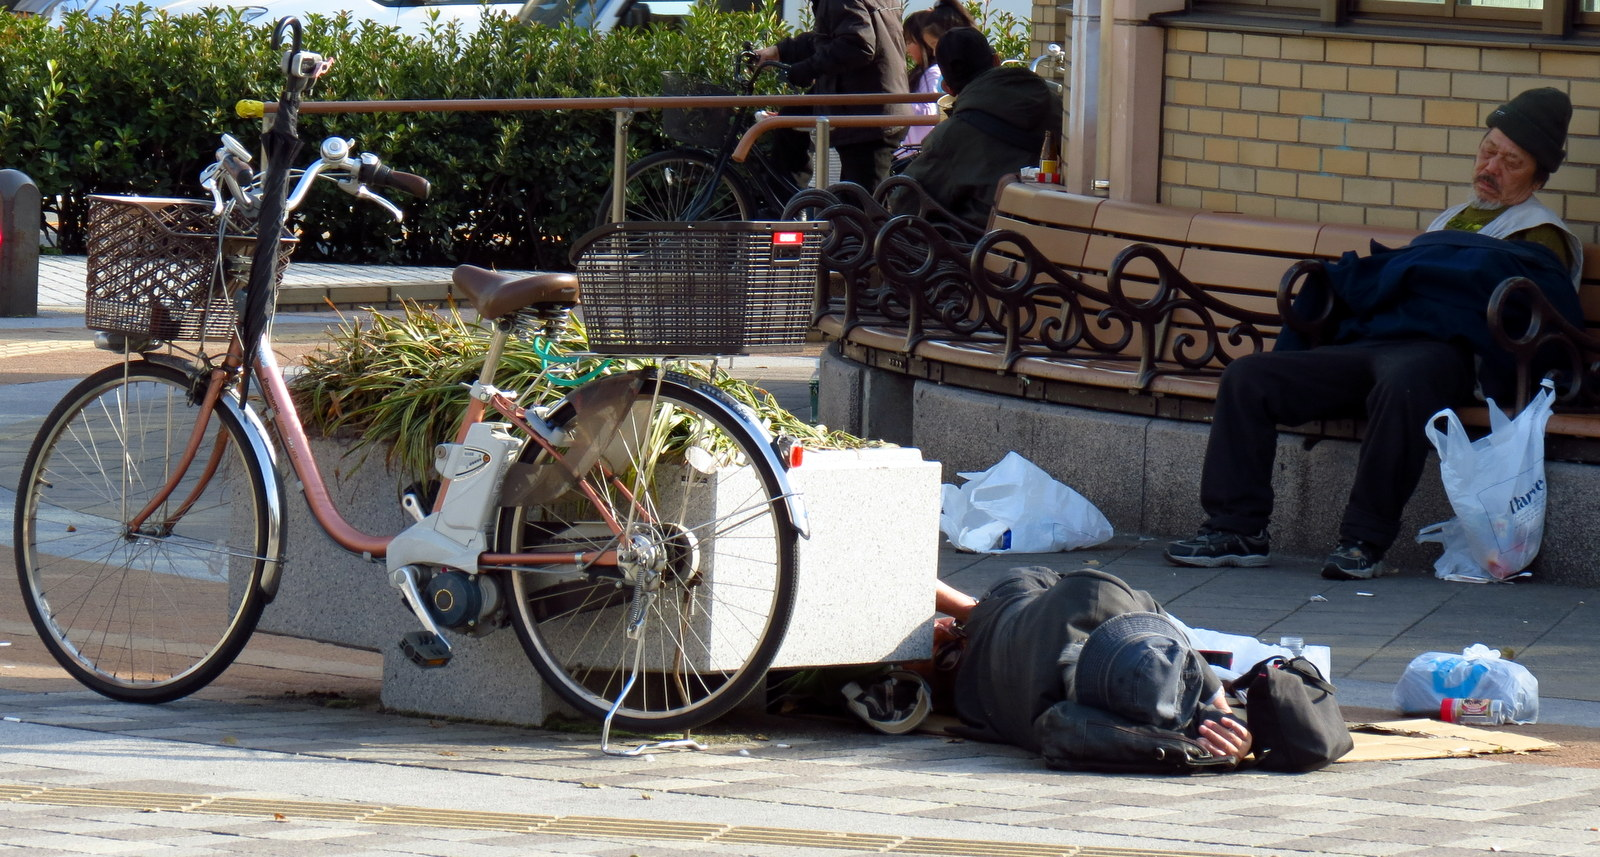 Japanese homeless person sleeping in the street Osaka